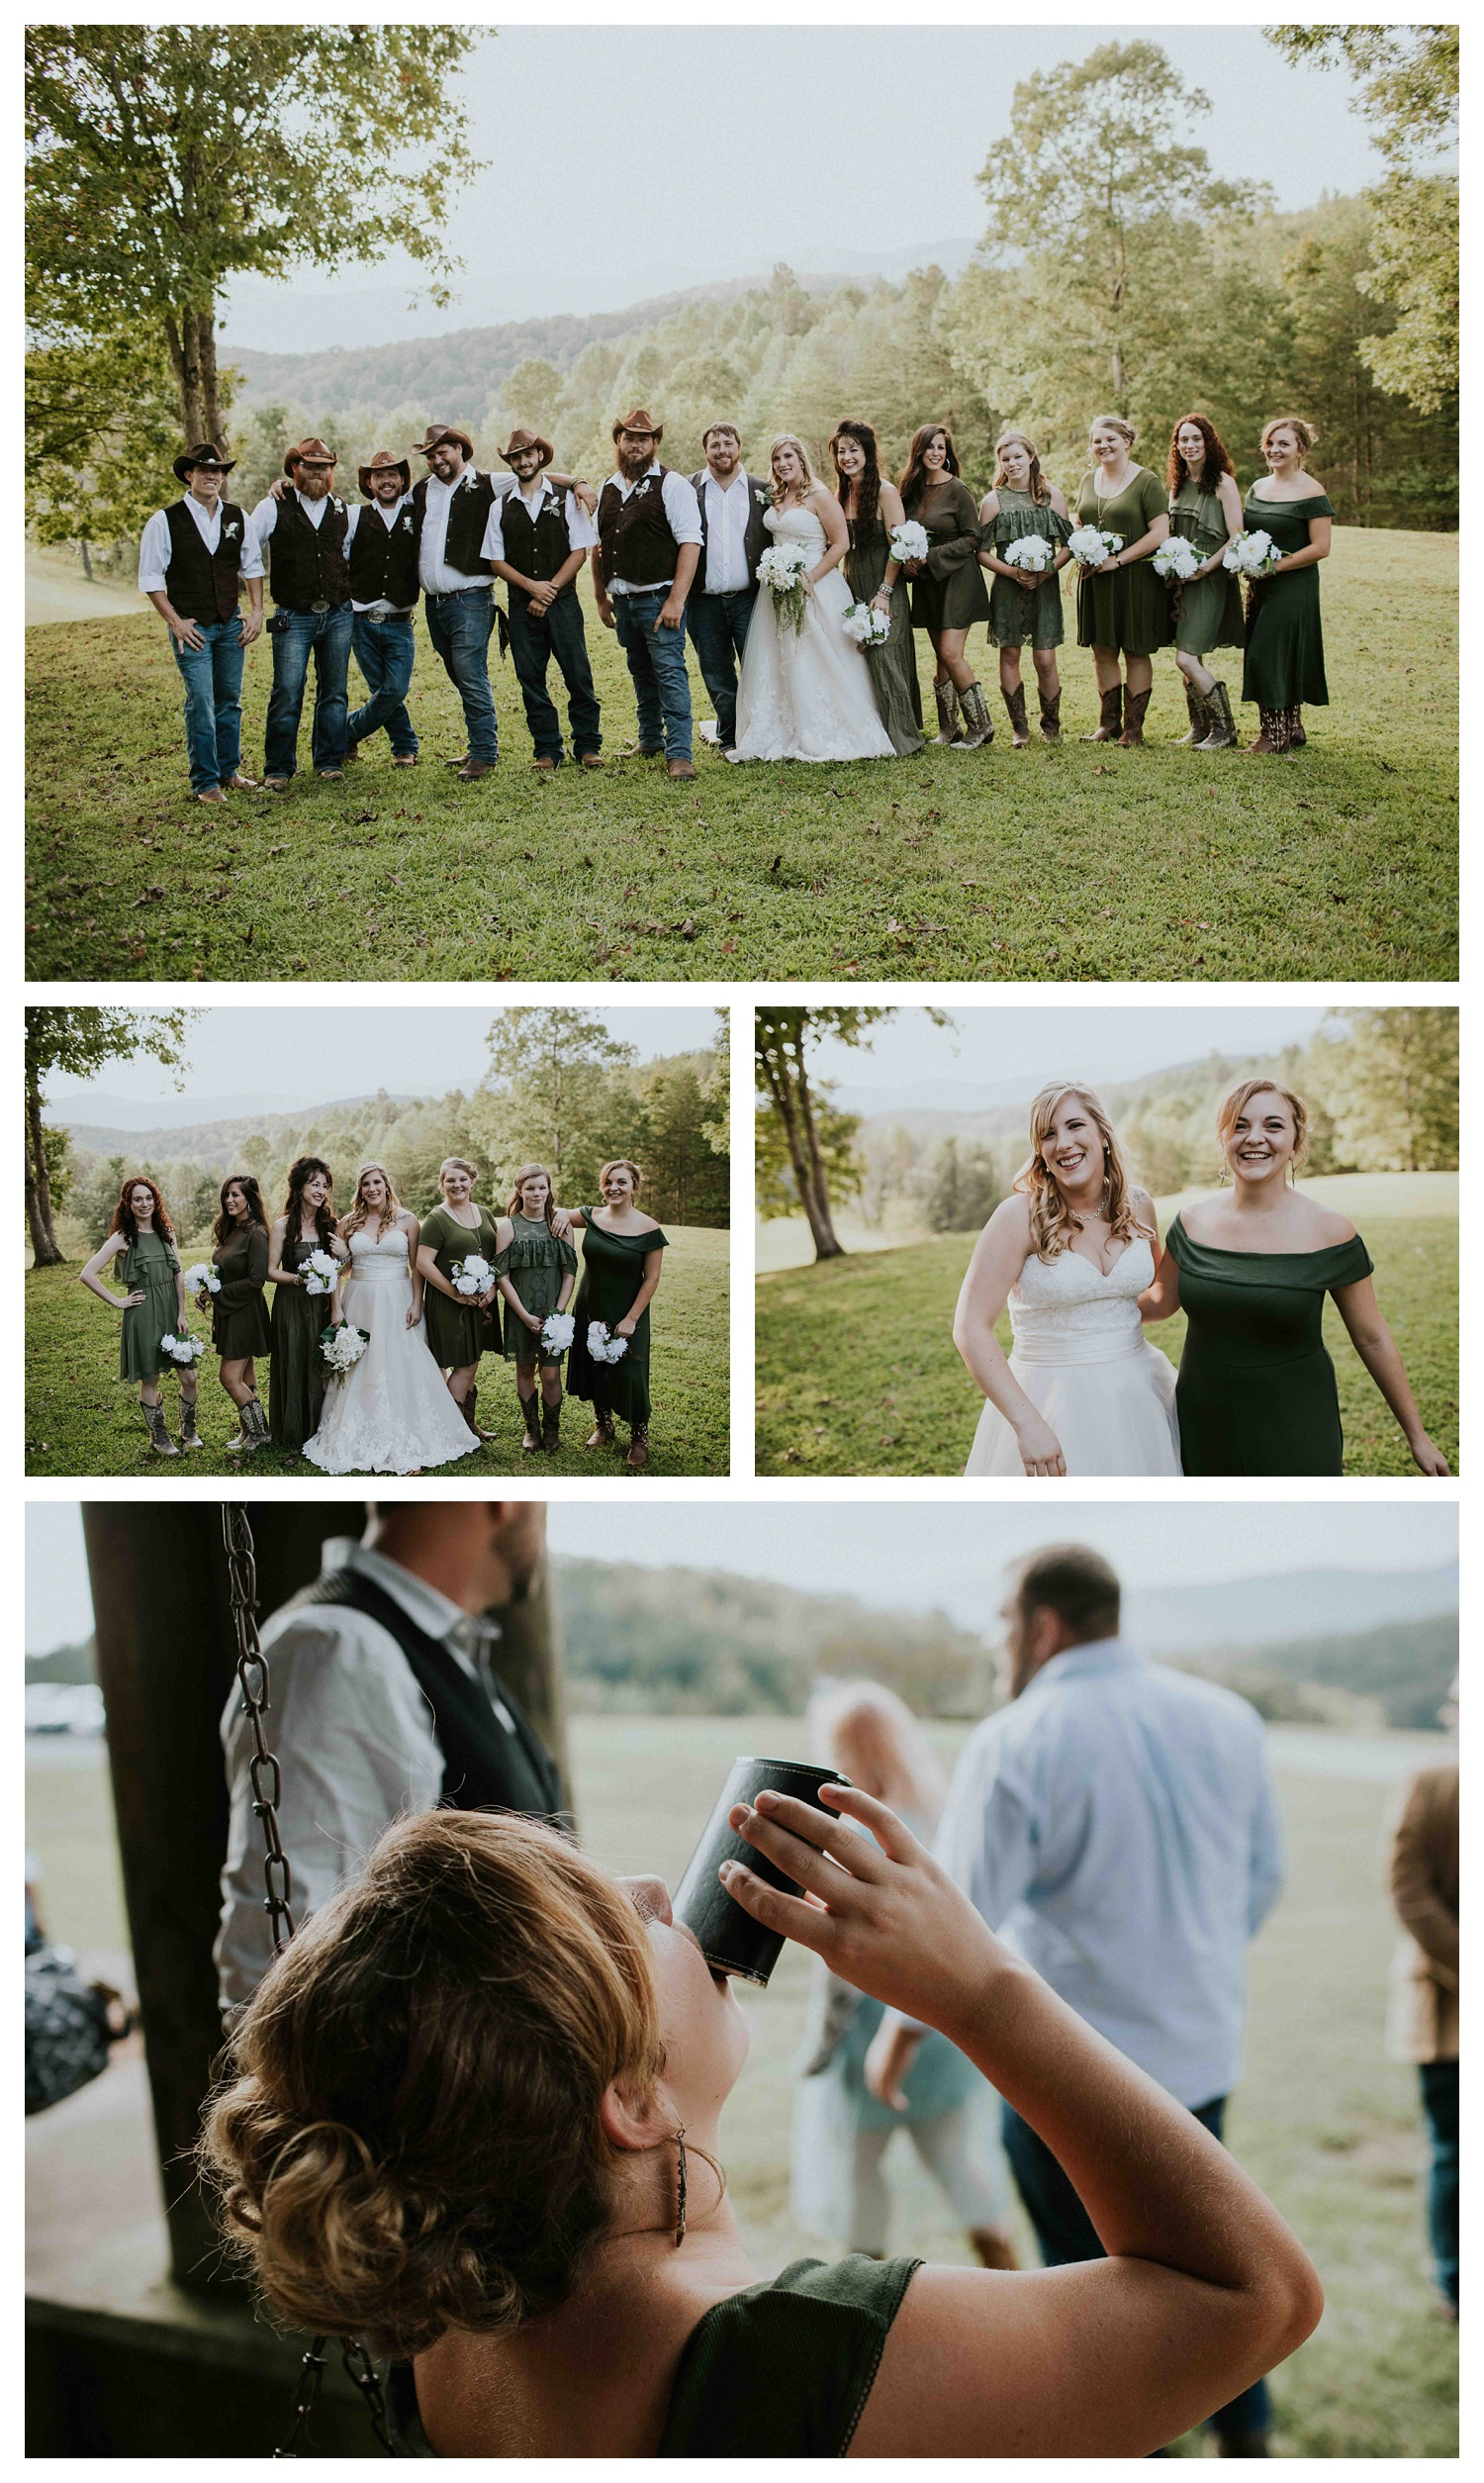 Destination Wedding Photographer R-Ranch in the Mountains Georgia Chloe Ann Photography_0009.jpg